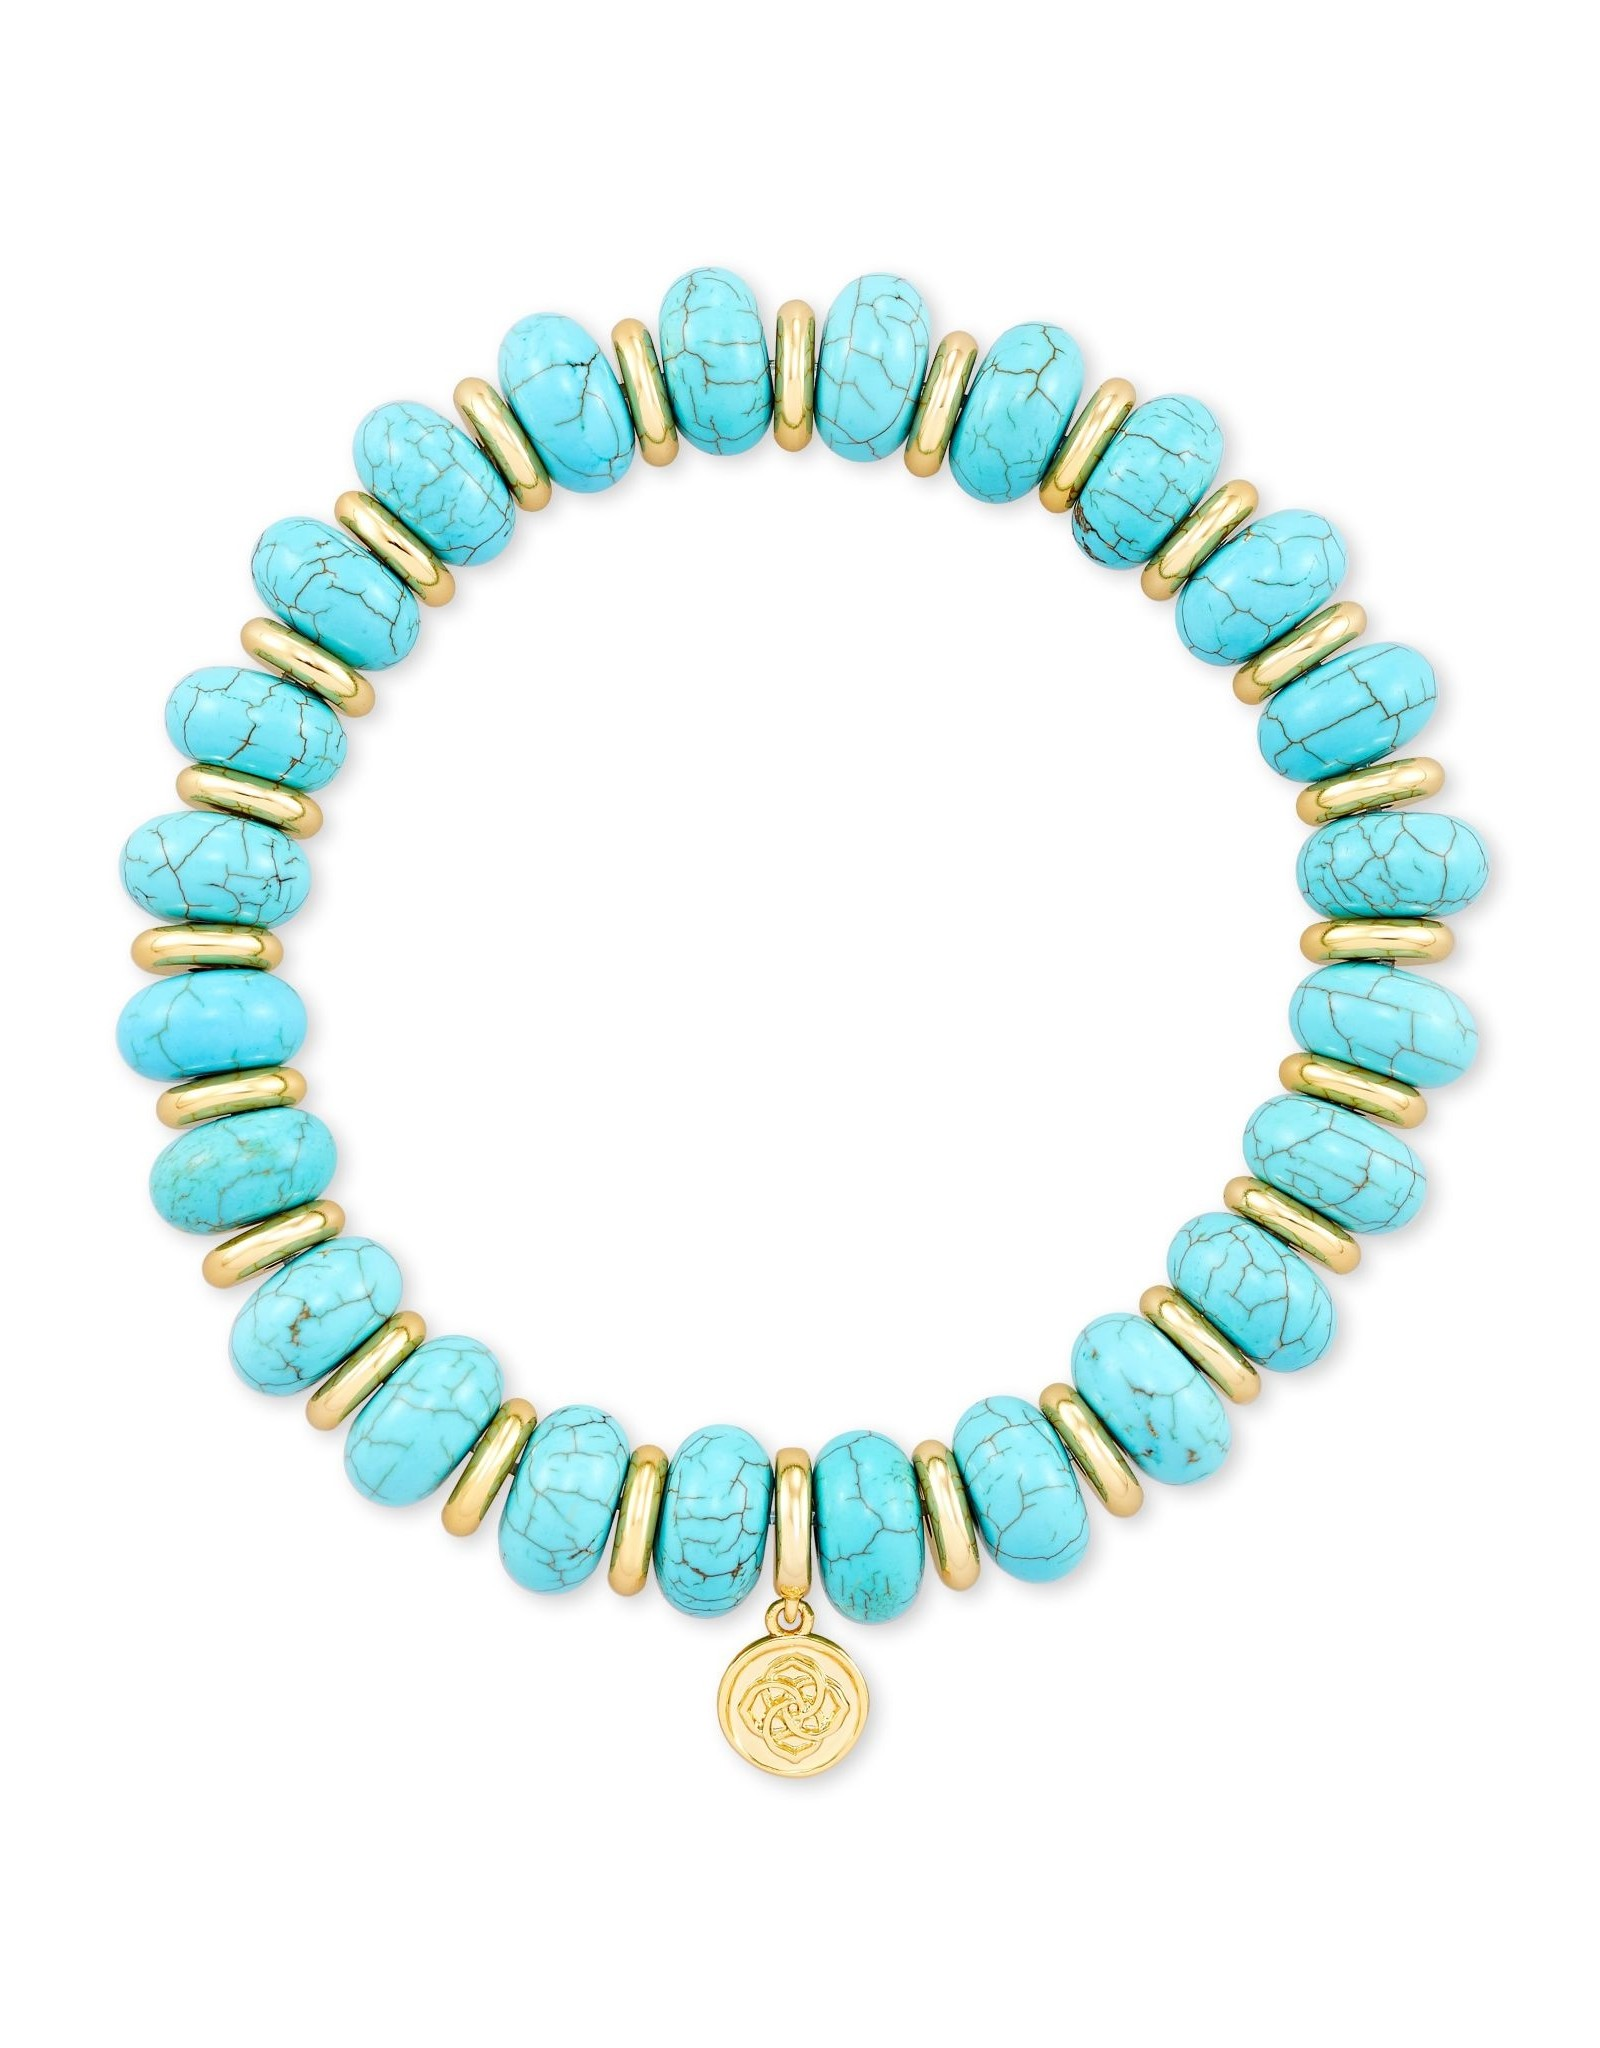 Kendra Scott Rebecca Stretch Bracelet - Variegated Turquoise Magnesite/Gold